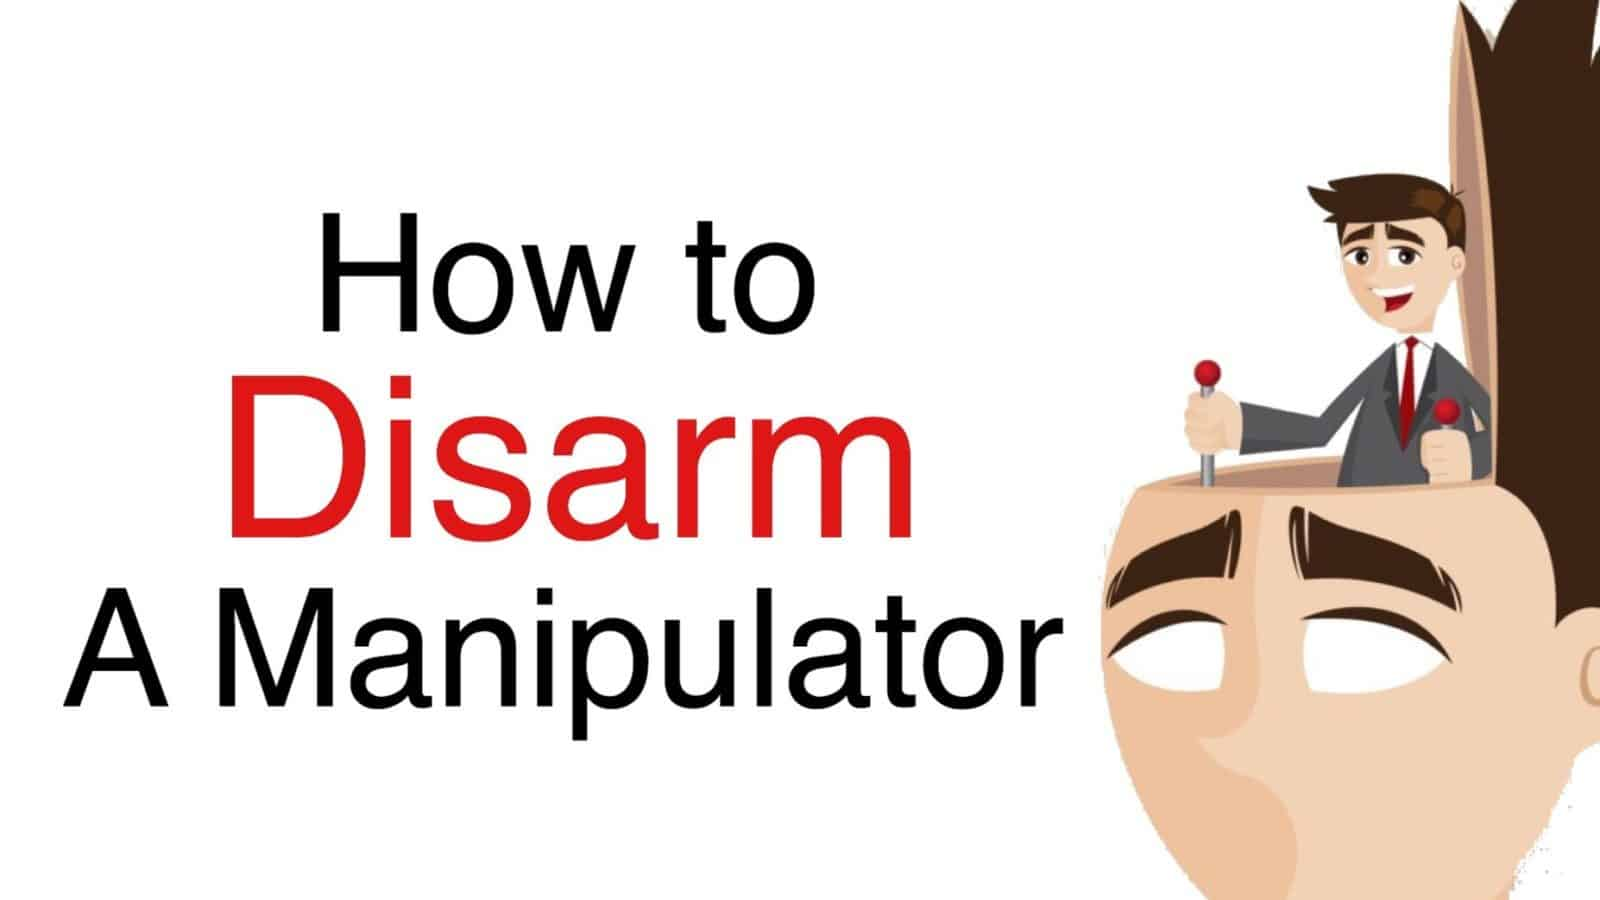 How to Disarm a Manipulator